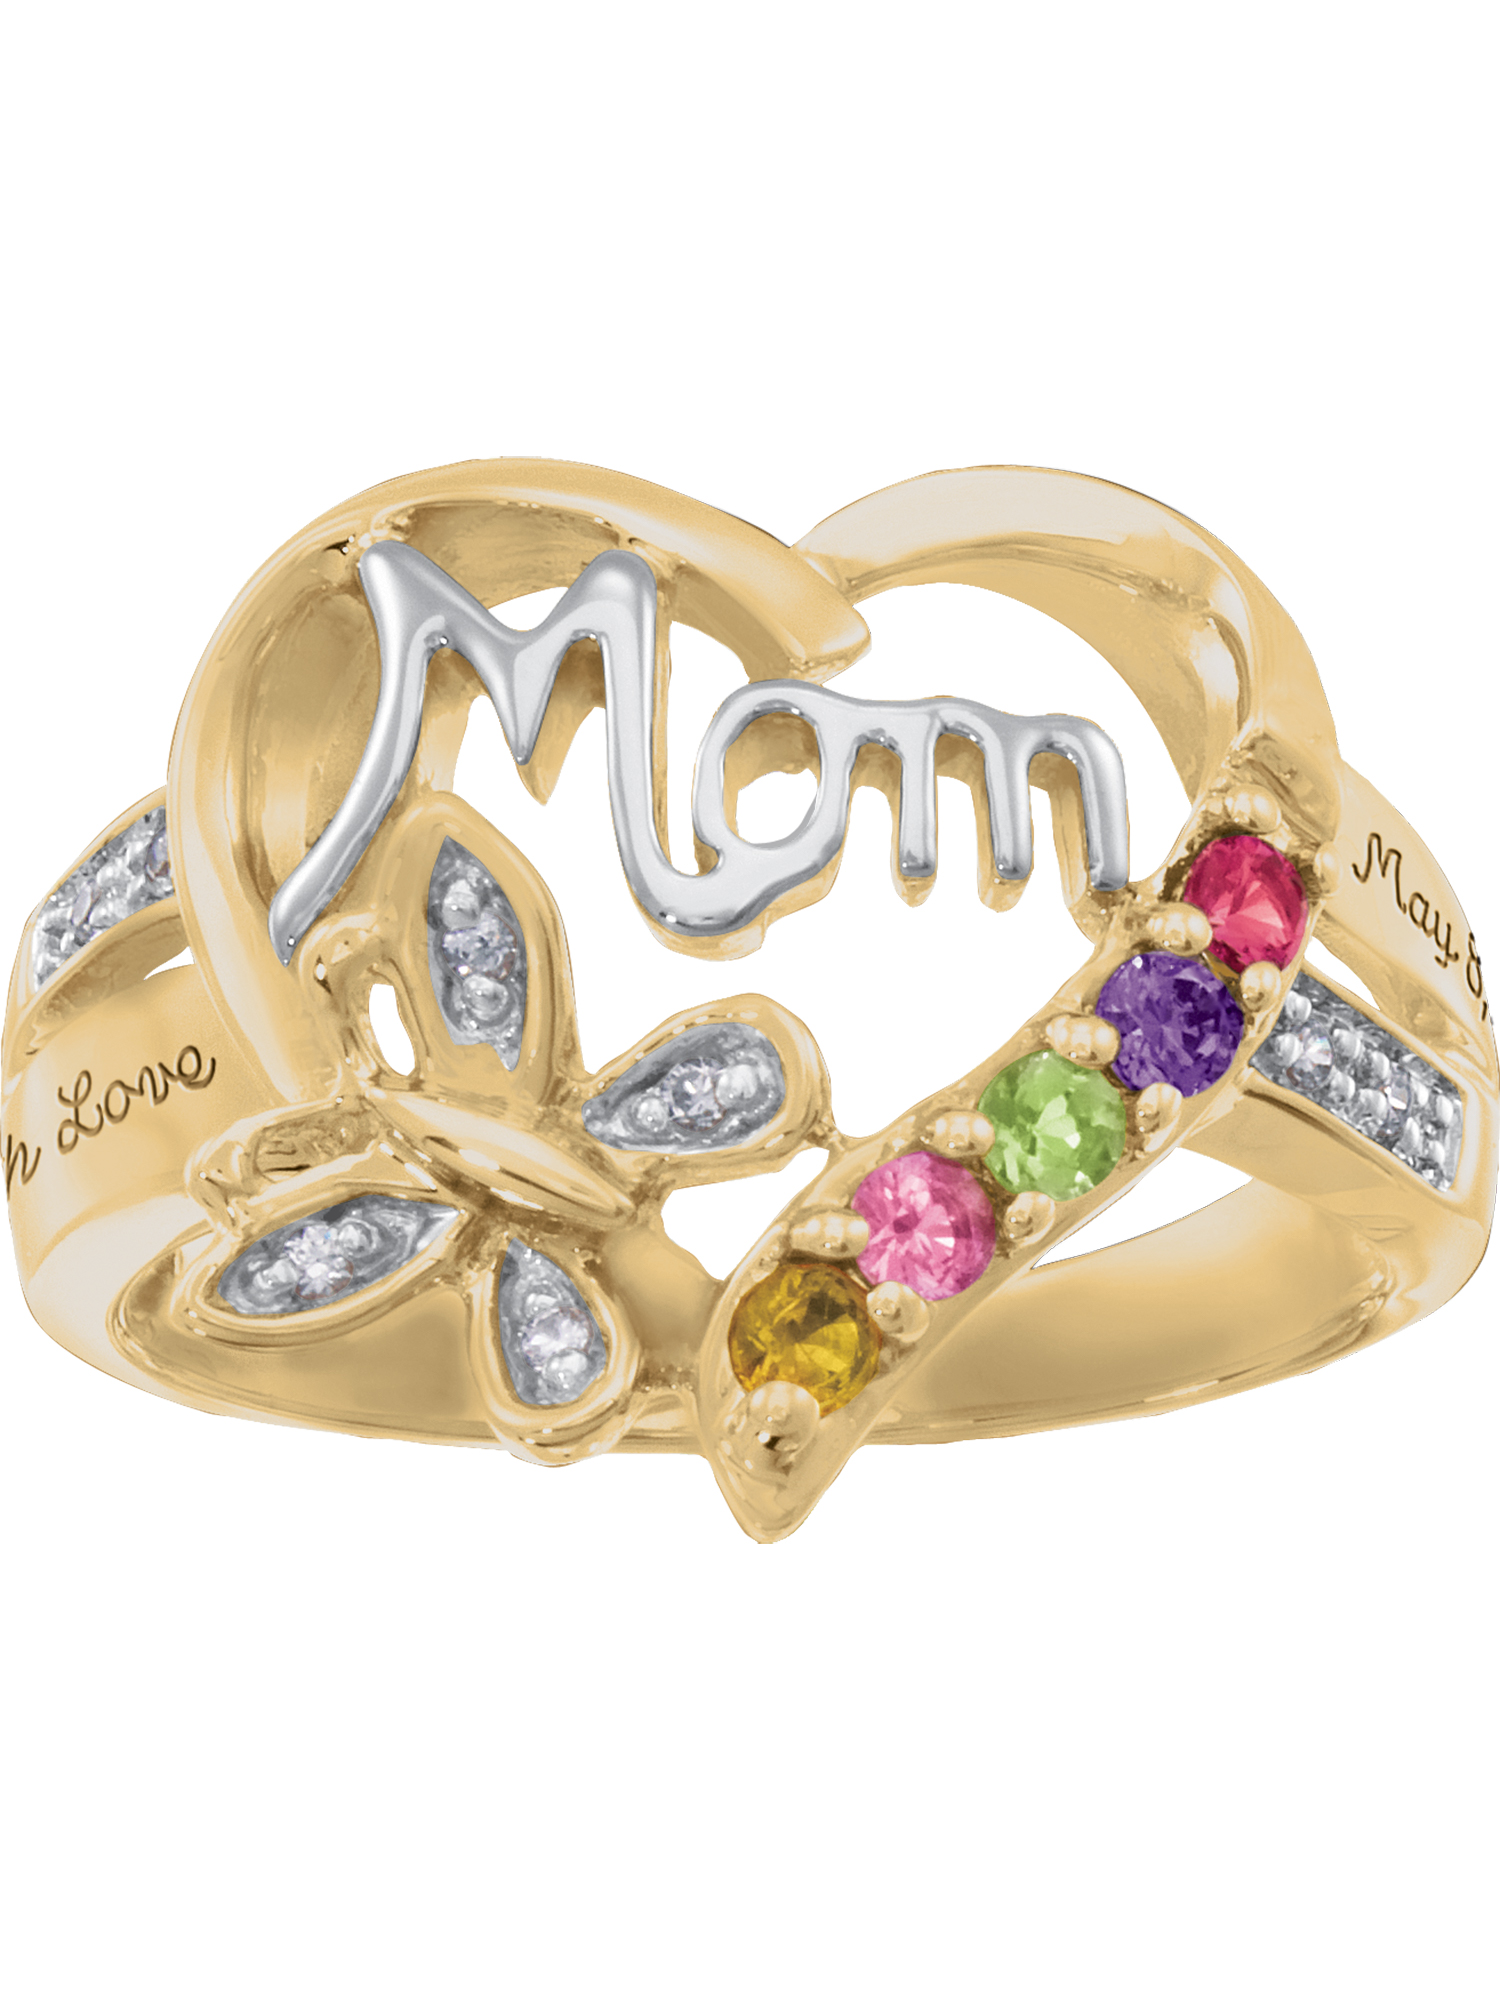 ca names rings most pin universitymagazine s flowers girl baby popular photography name newborn the